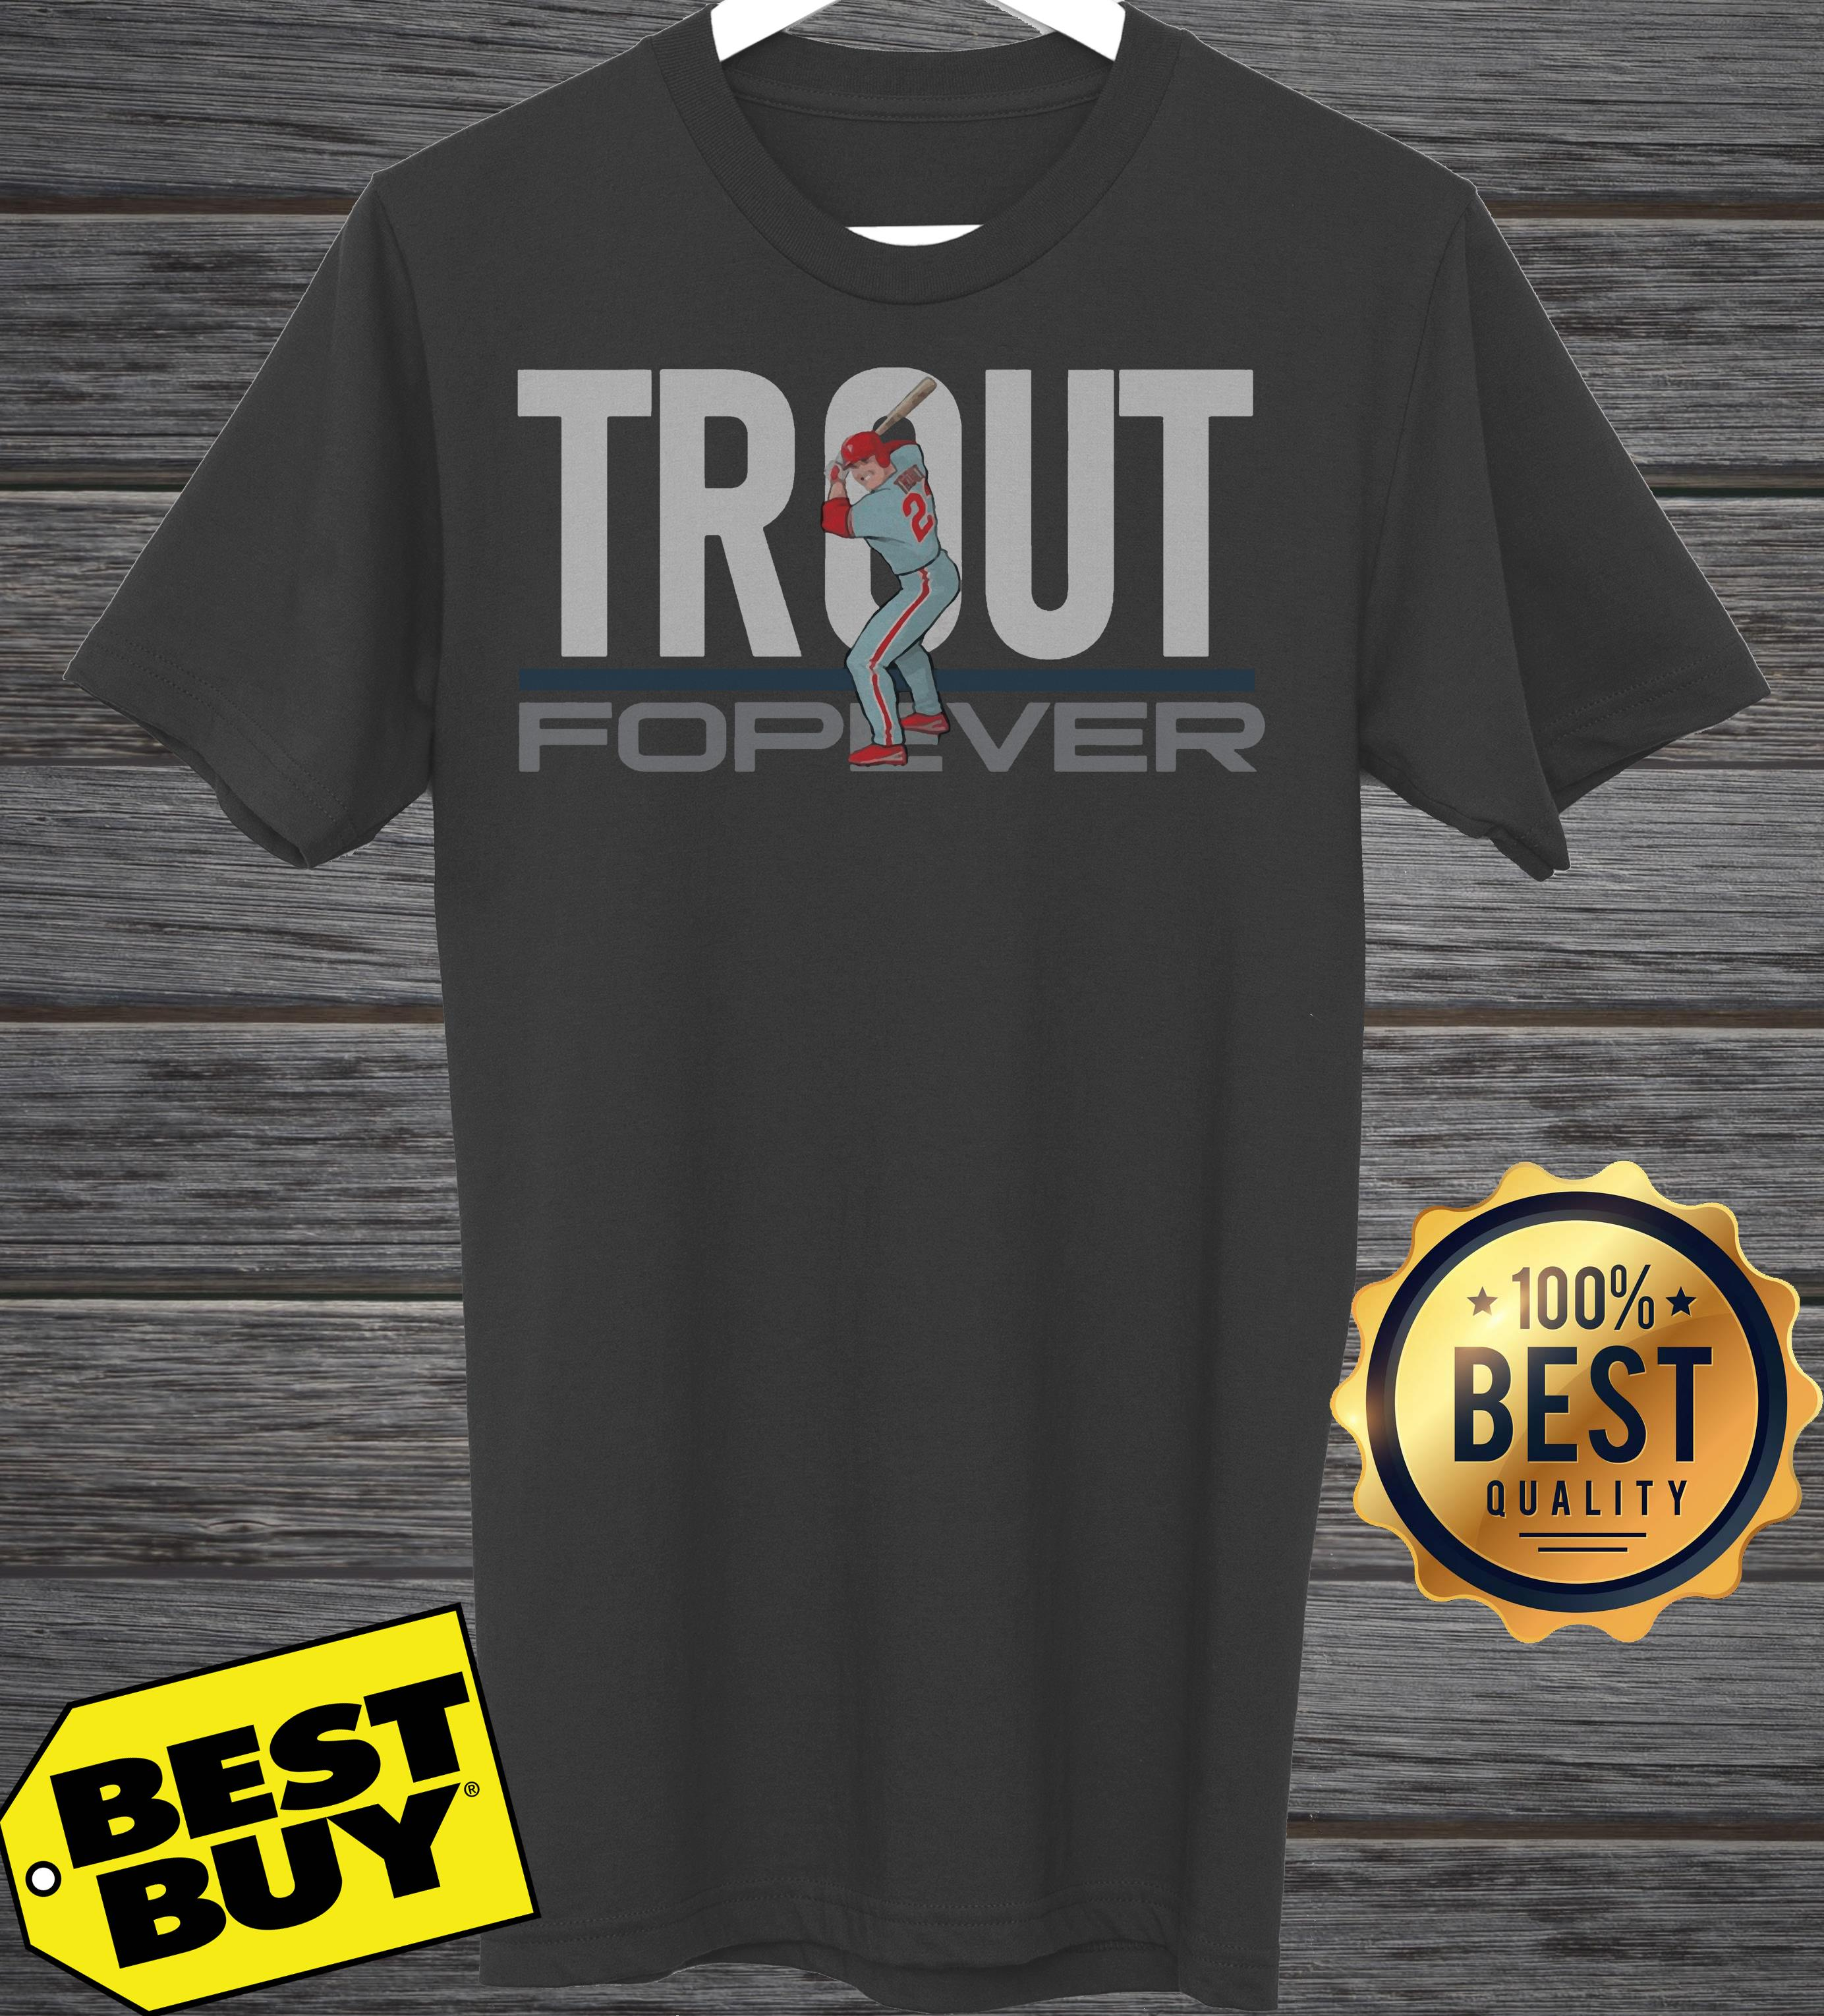 Astros Tuesday Trout Forever ladies tee